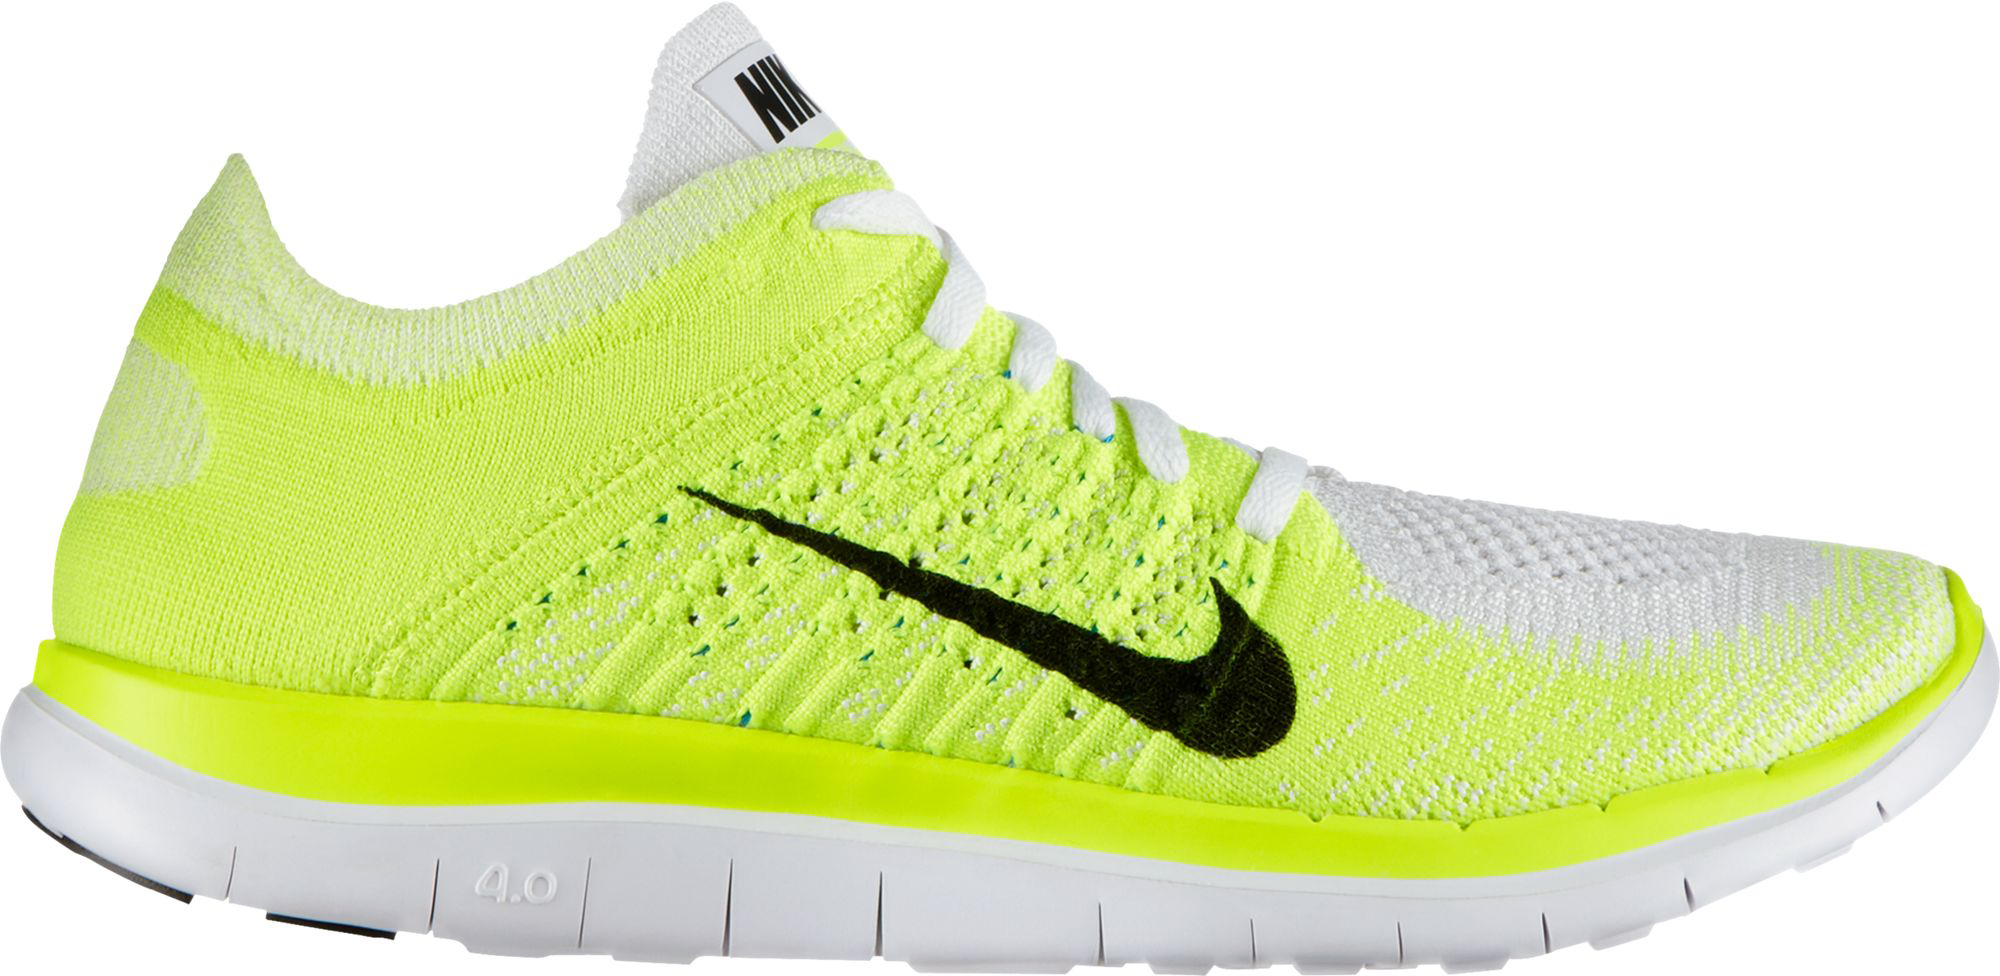 newest f2749 5537c nike flyknit 4.0 running shoes